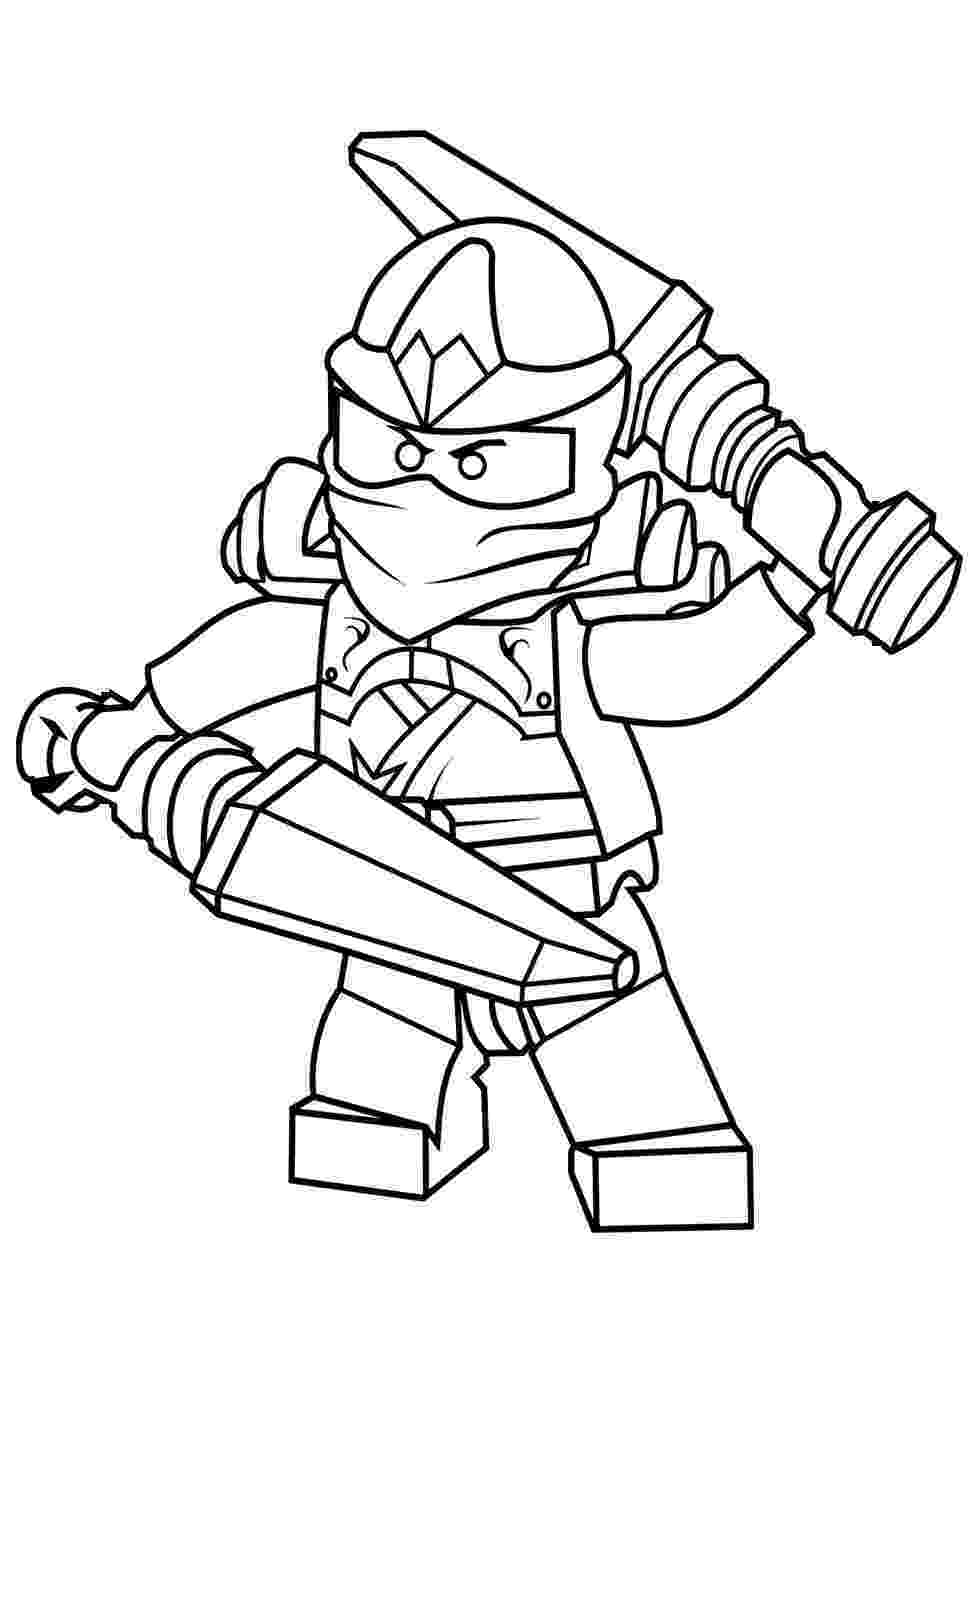 ninjago pictures to print lego ninjago coloring pages best coloring pages for kids ninjago print pictures to